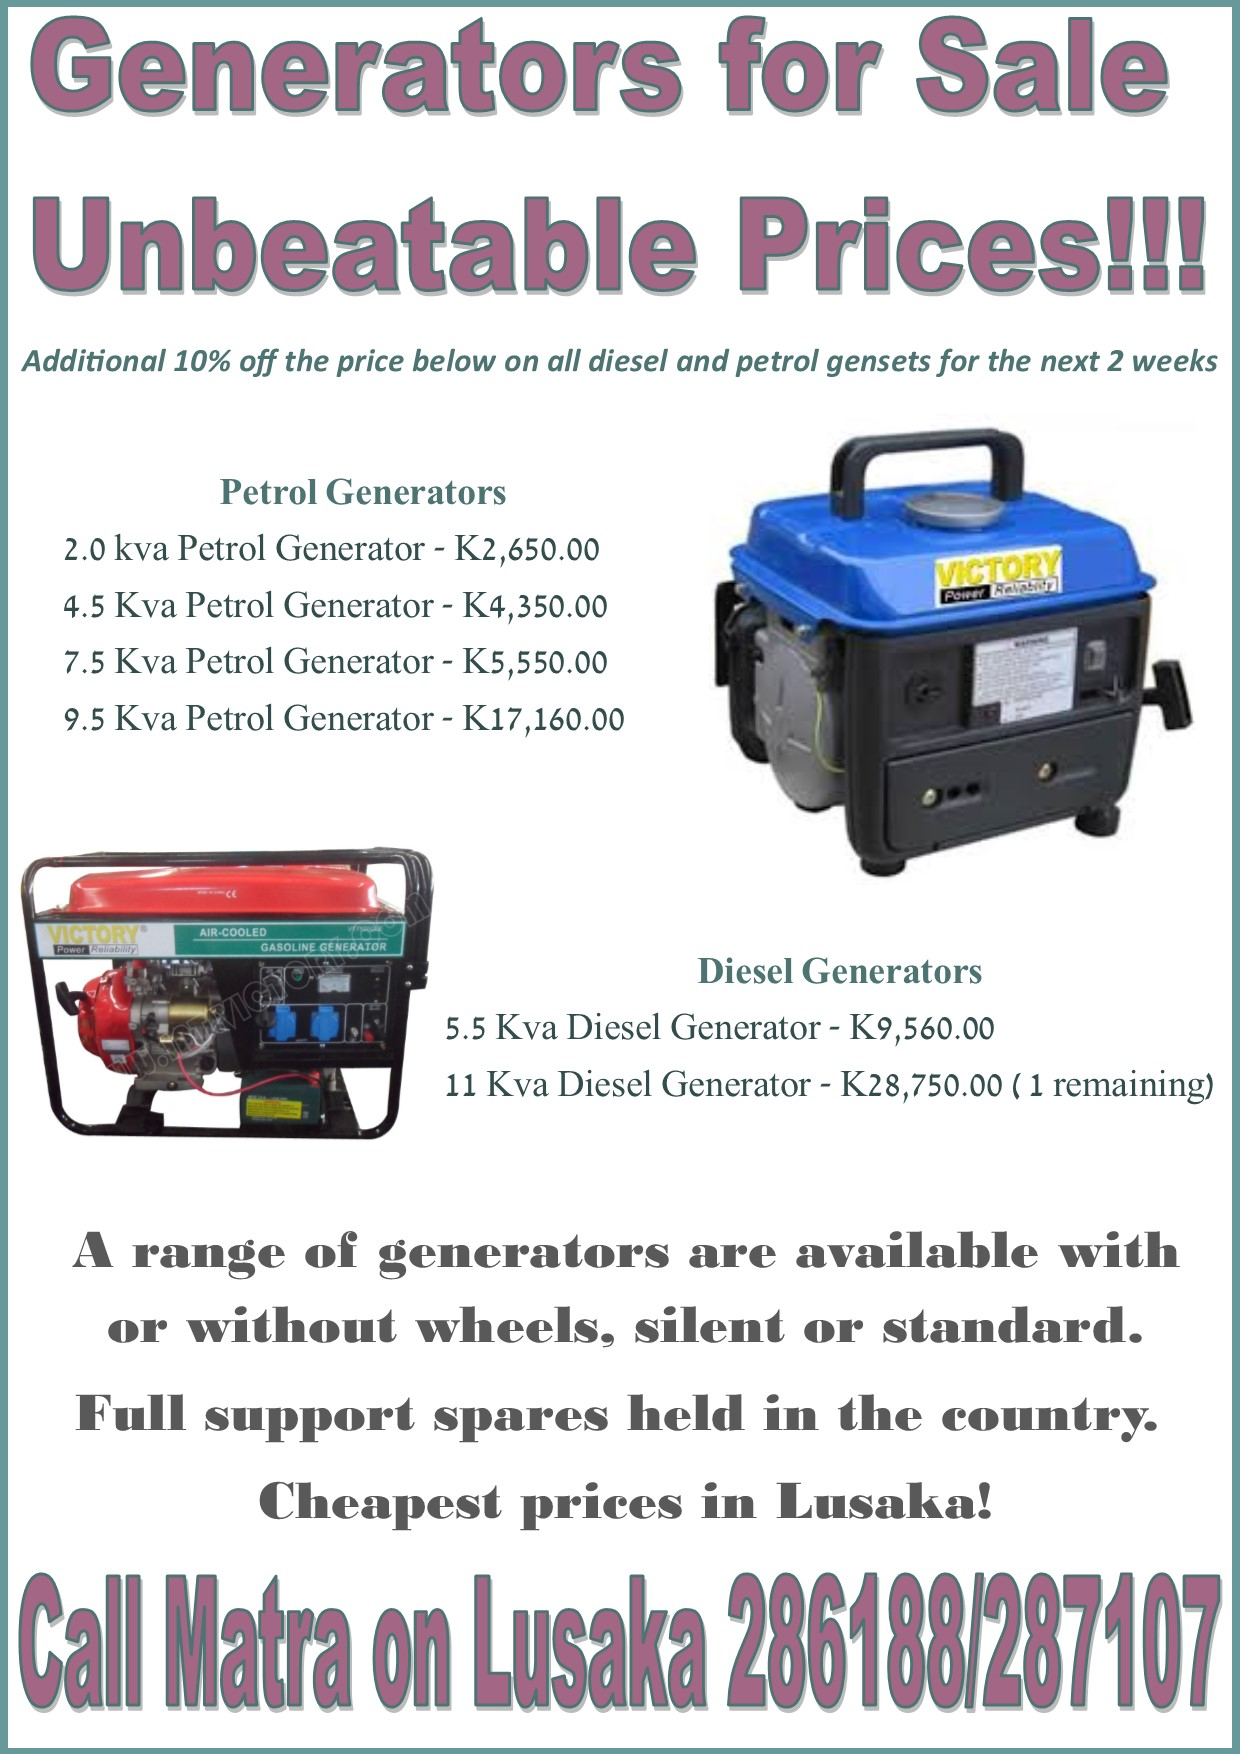 08 06 2016 GENERATORS FOR SALE – UNBEATABLE PRICES Ad dicts